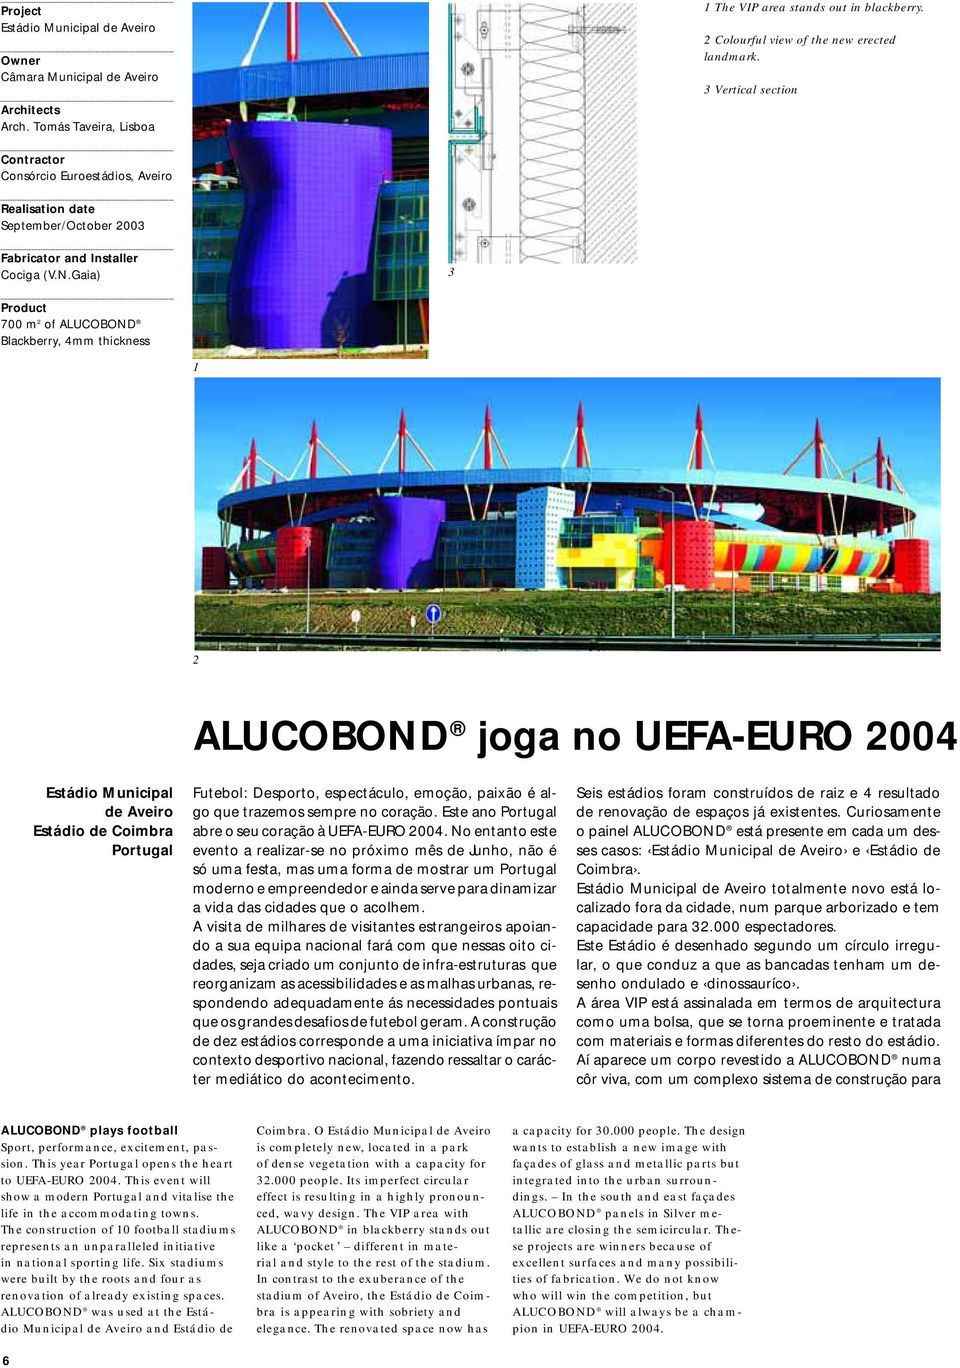 Gaia) 3 Product 700 m 2 of ALUCOBOND Blackberry, 4mm thickness 1 2 ALUCOBOND joga no UEFA-EURO 2004 Estádio Municipal de Aveiro Estádio de Coimbra Portugal Futebol: Desporto, espectáculo, emoção,